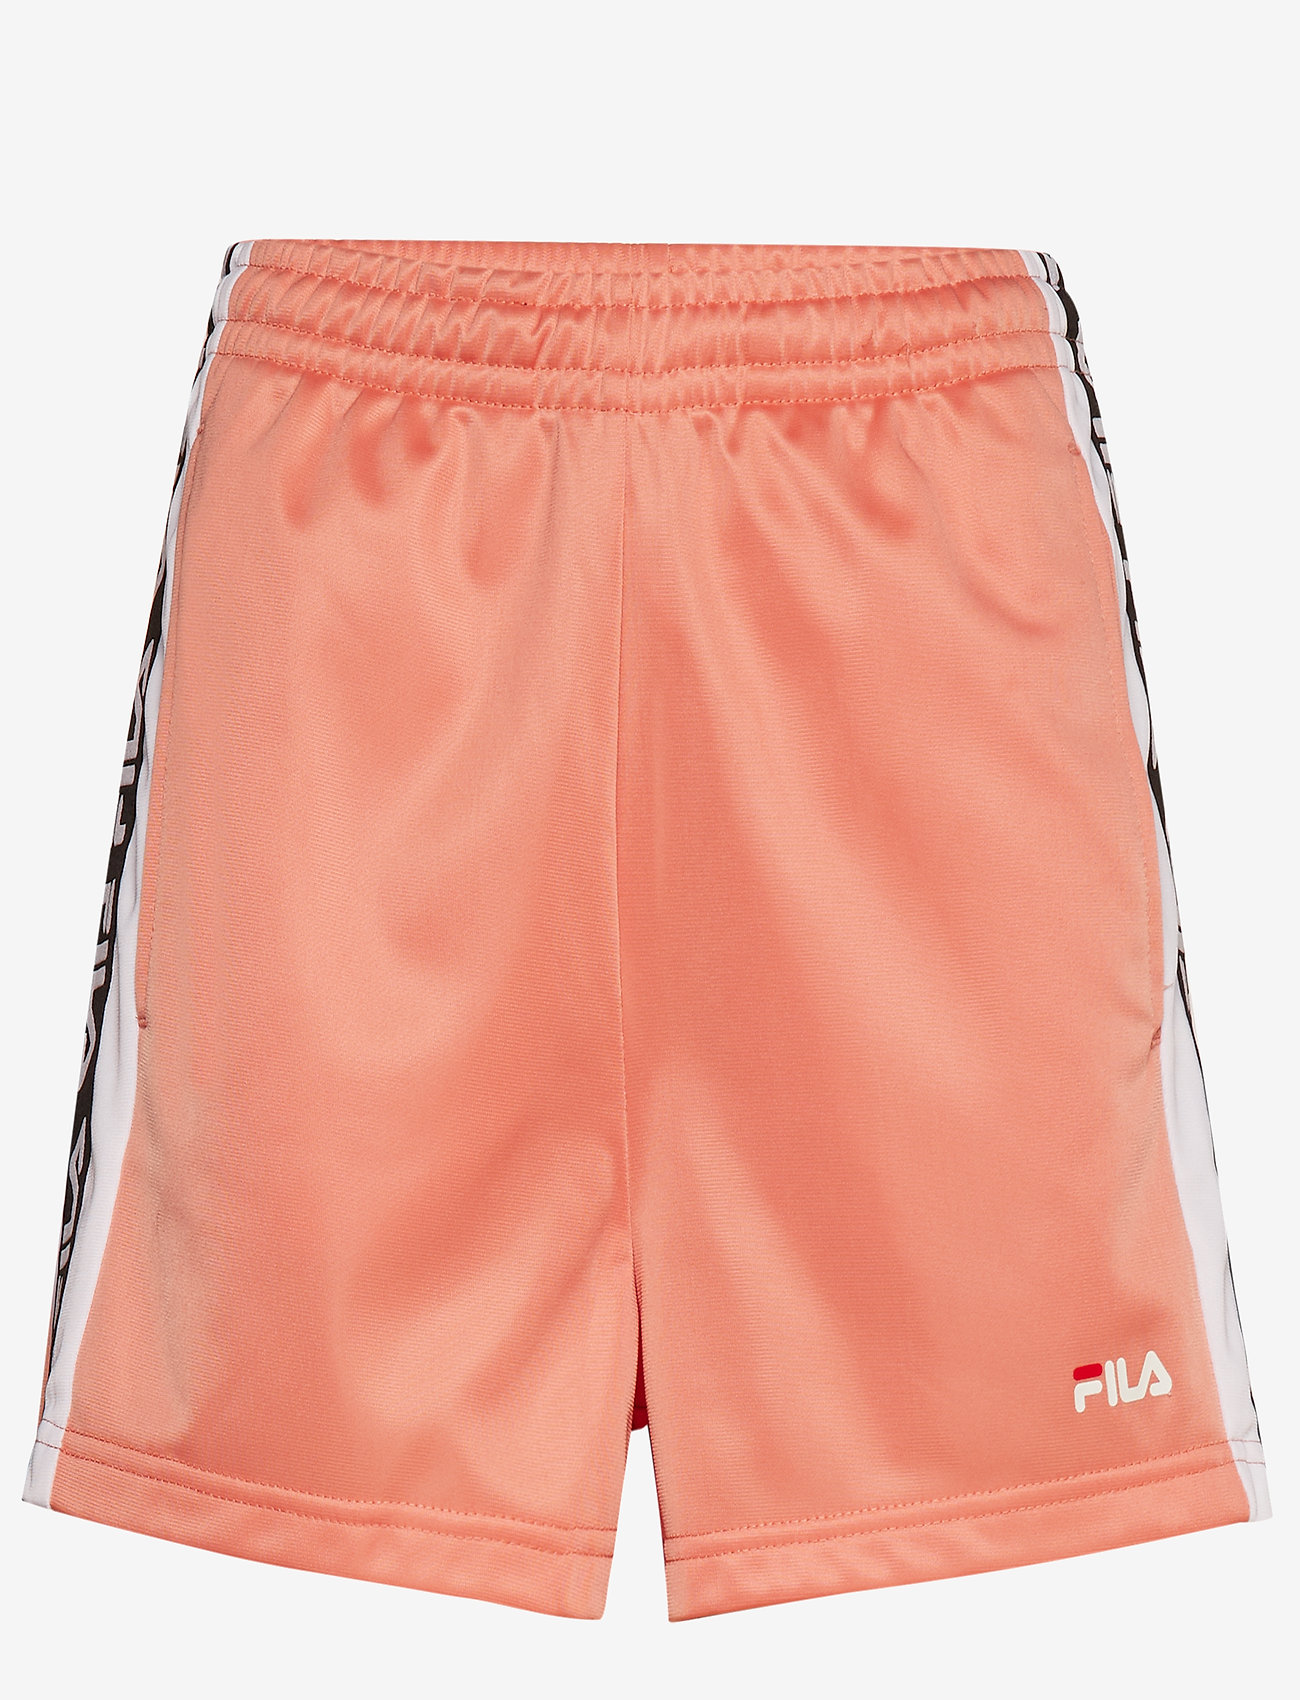 FILA - WOMEN TARIN shorts - high waist - casual shorts - lobster bisque-bright white